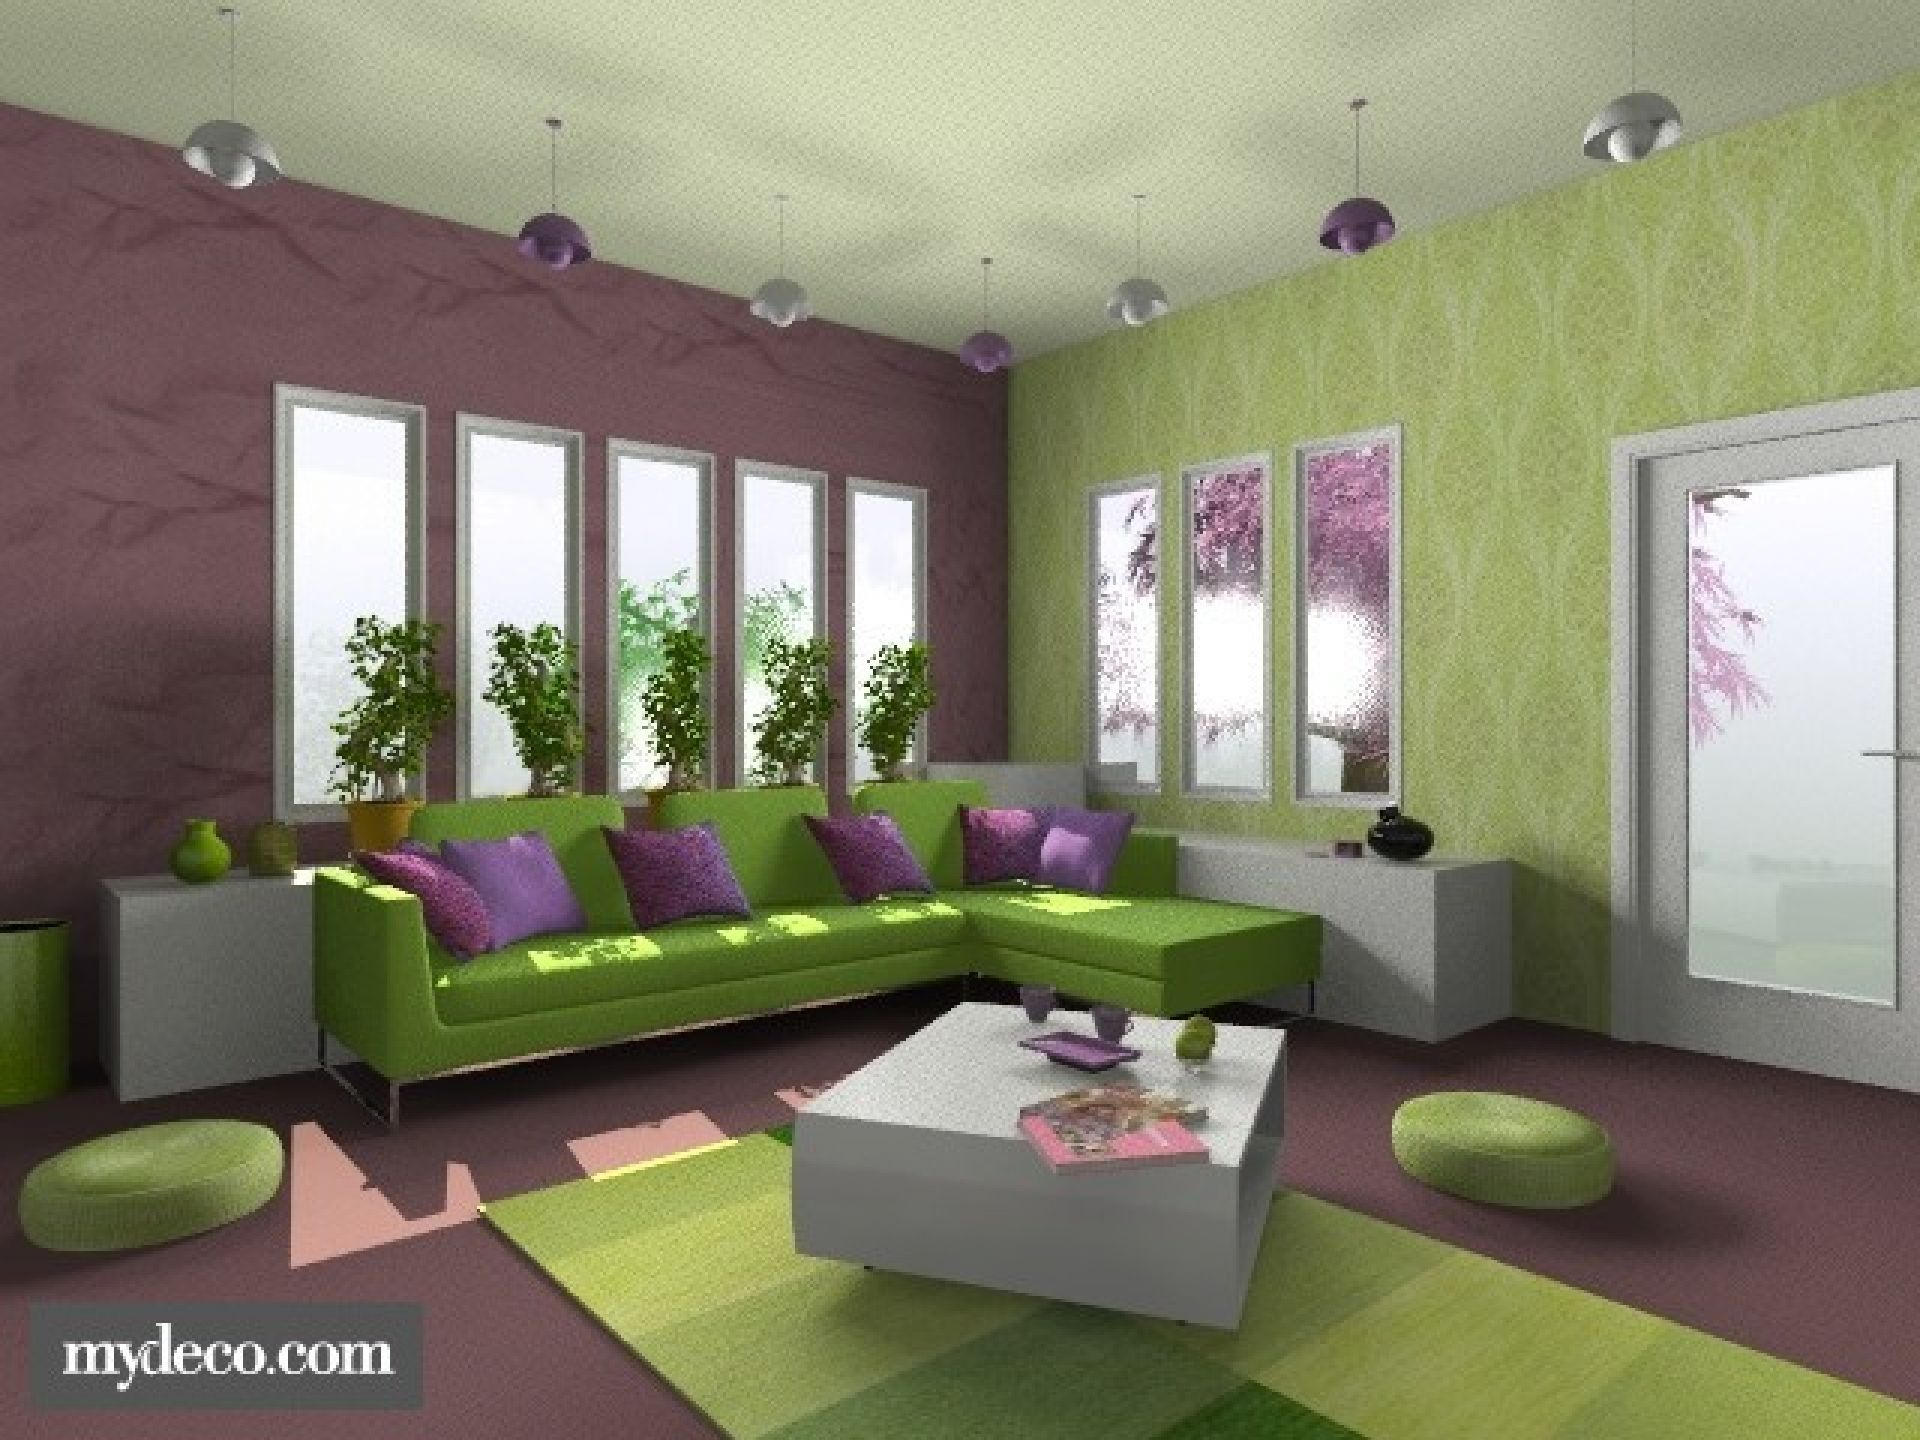 Living Room Color Green bedroom pictures of living room color schemes living room color